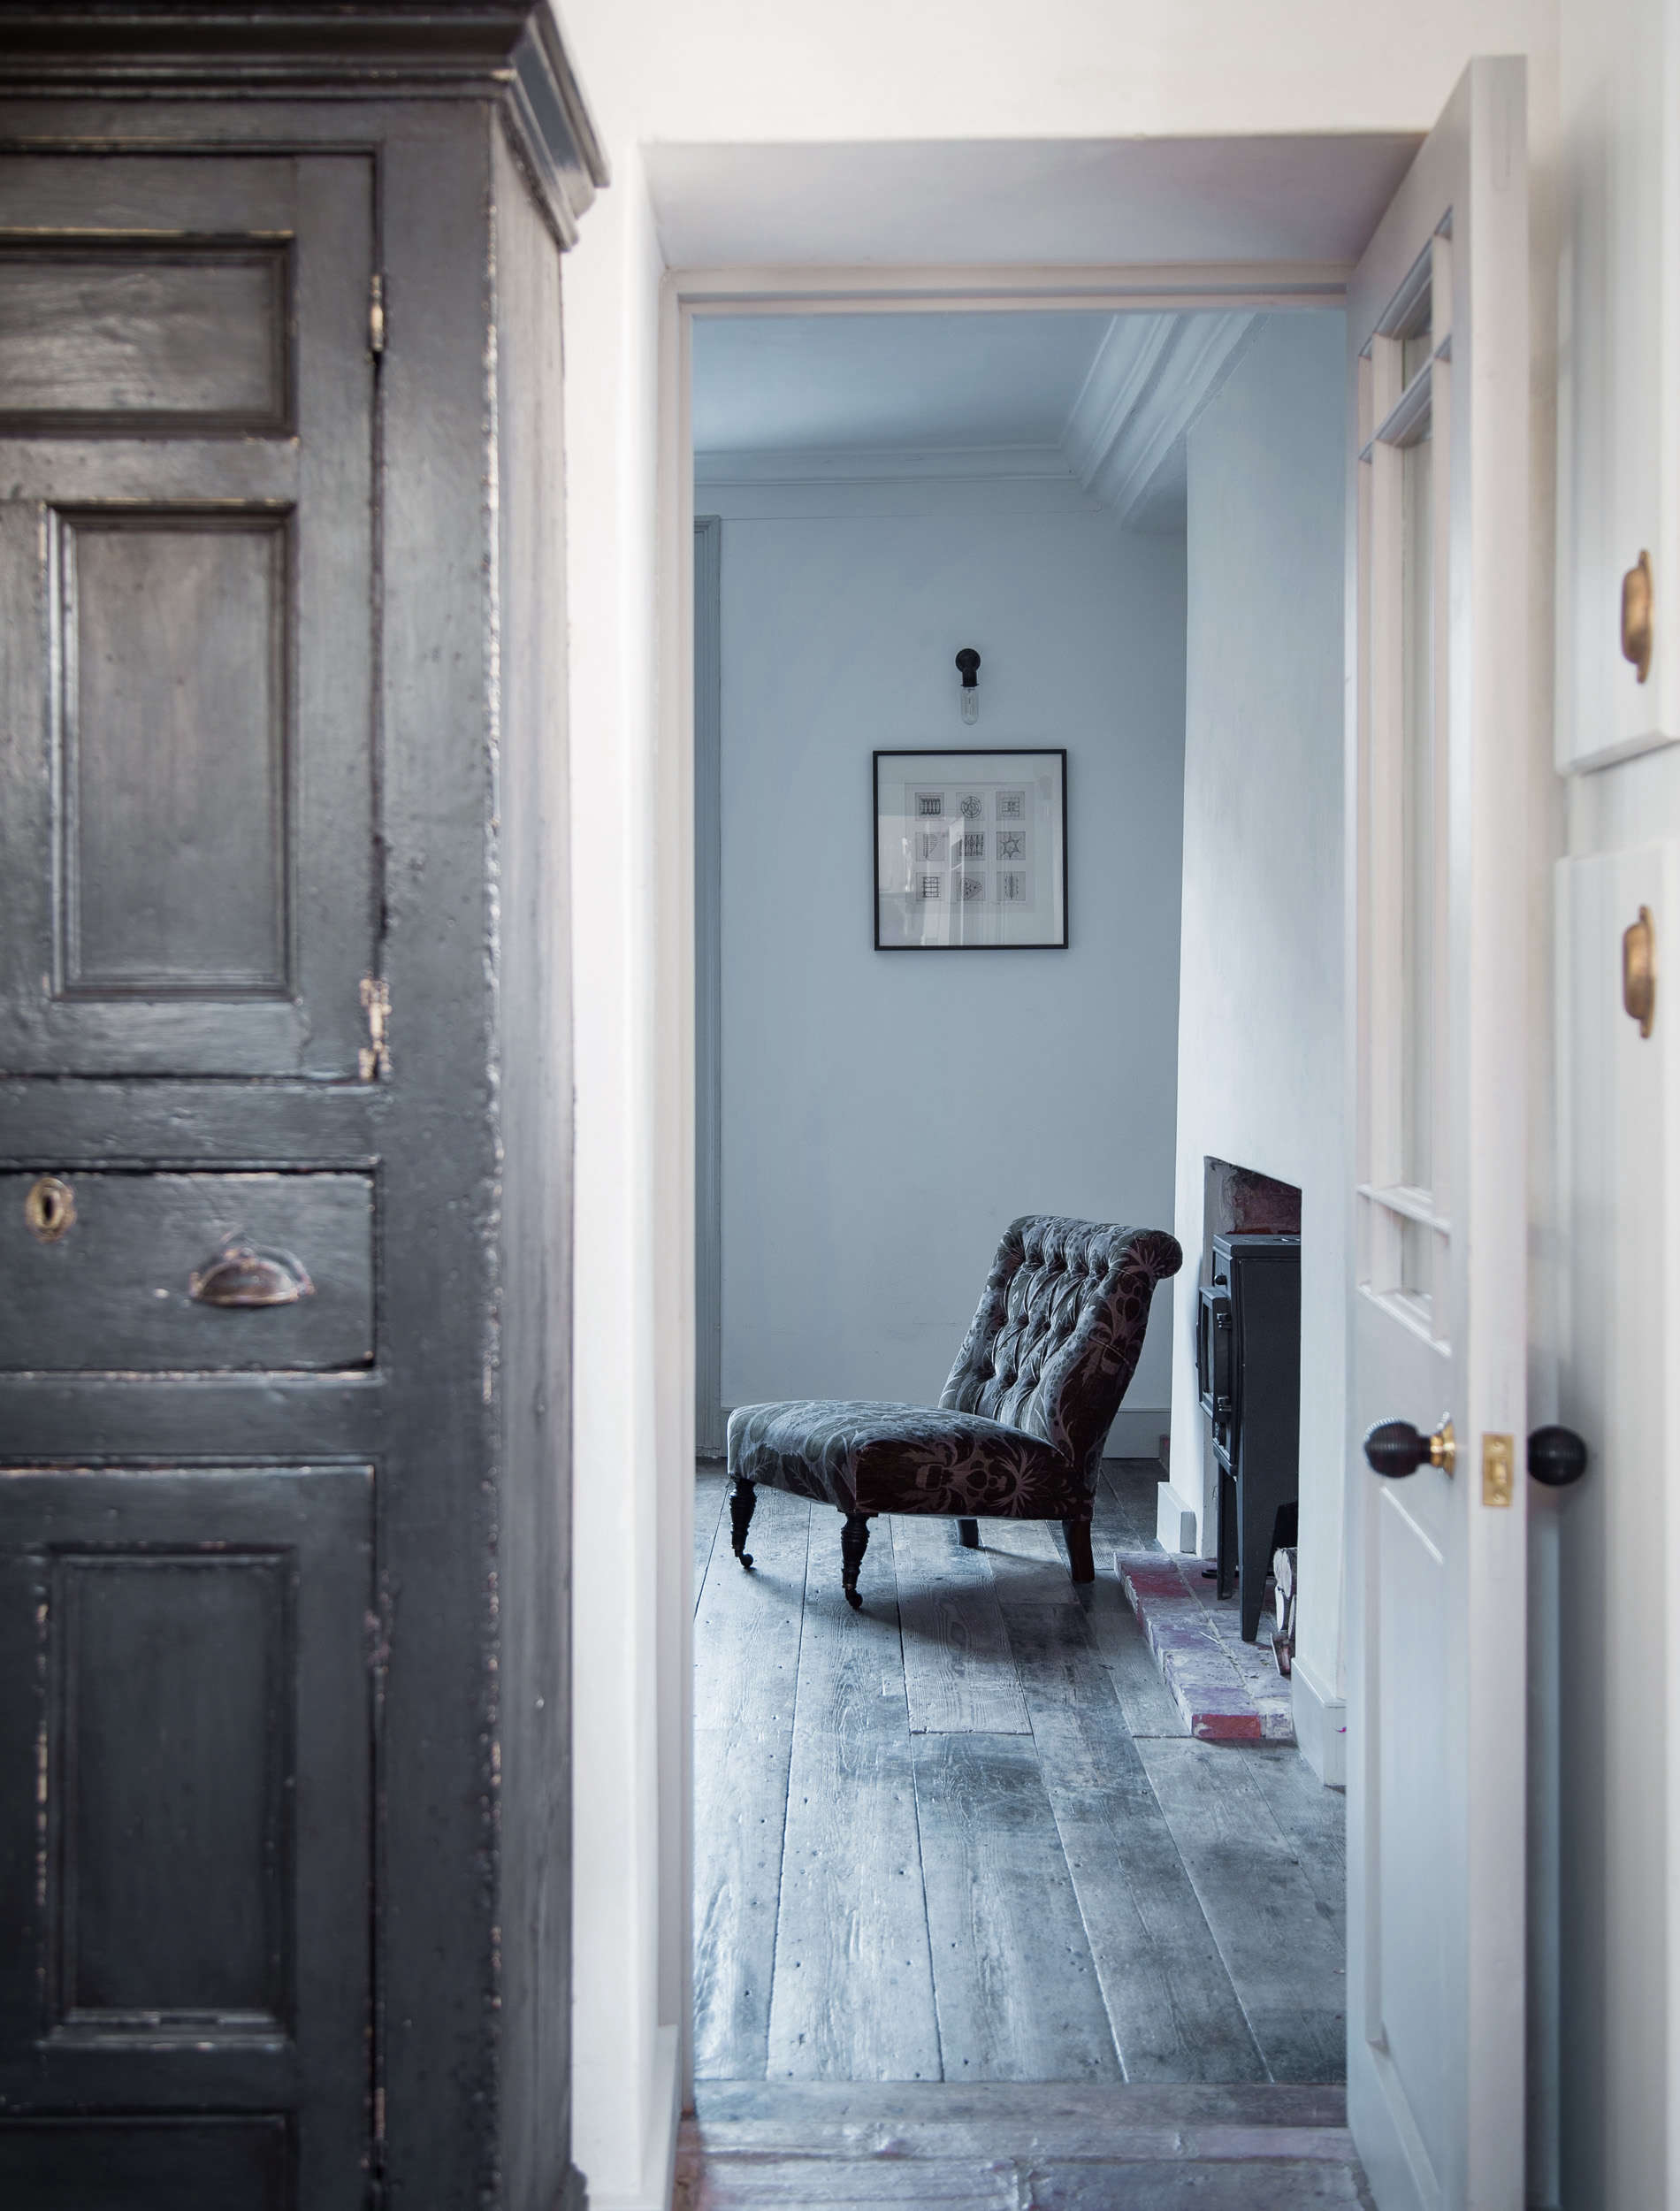 Sitting Area in Blue Dorset House by Mark Lewis, Photo by Rory Gardiner